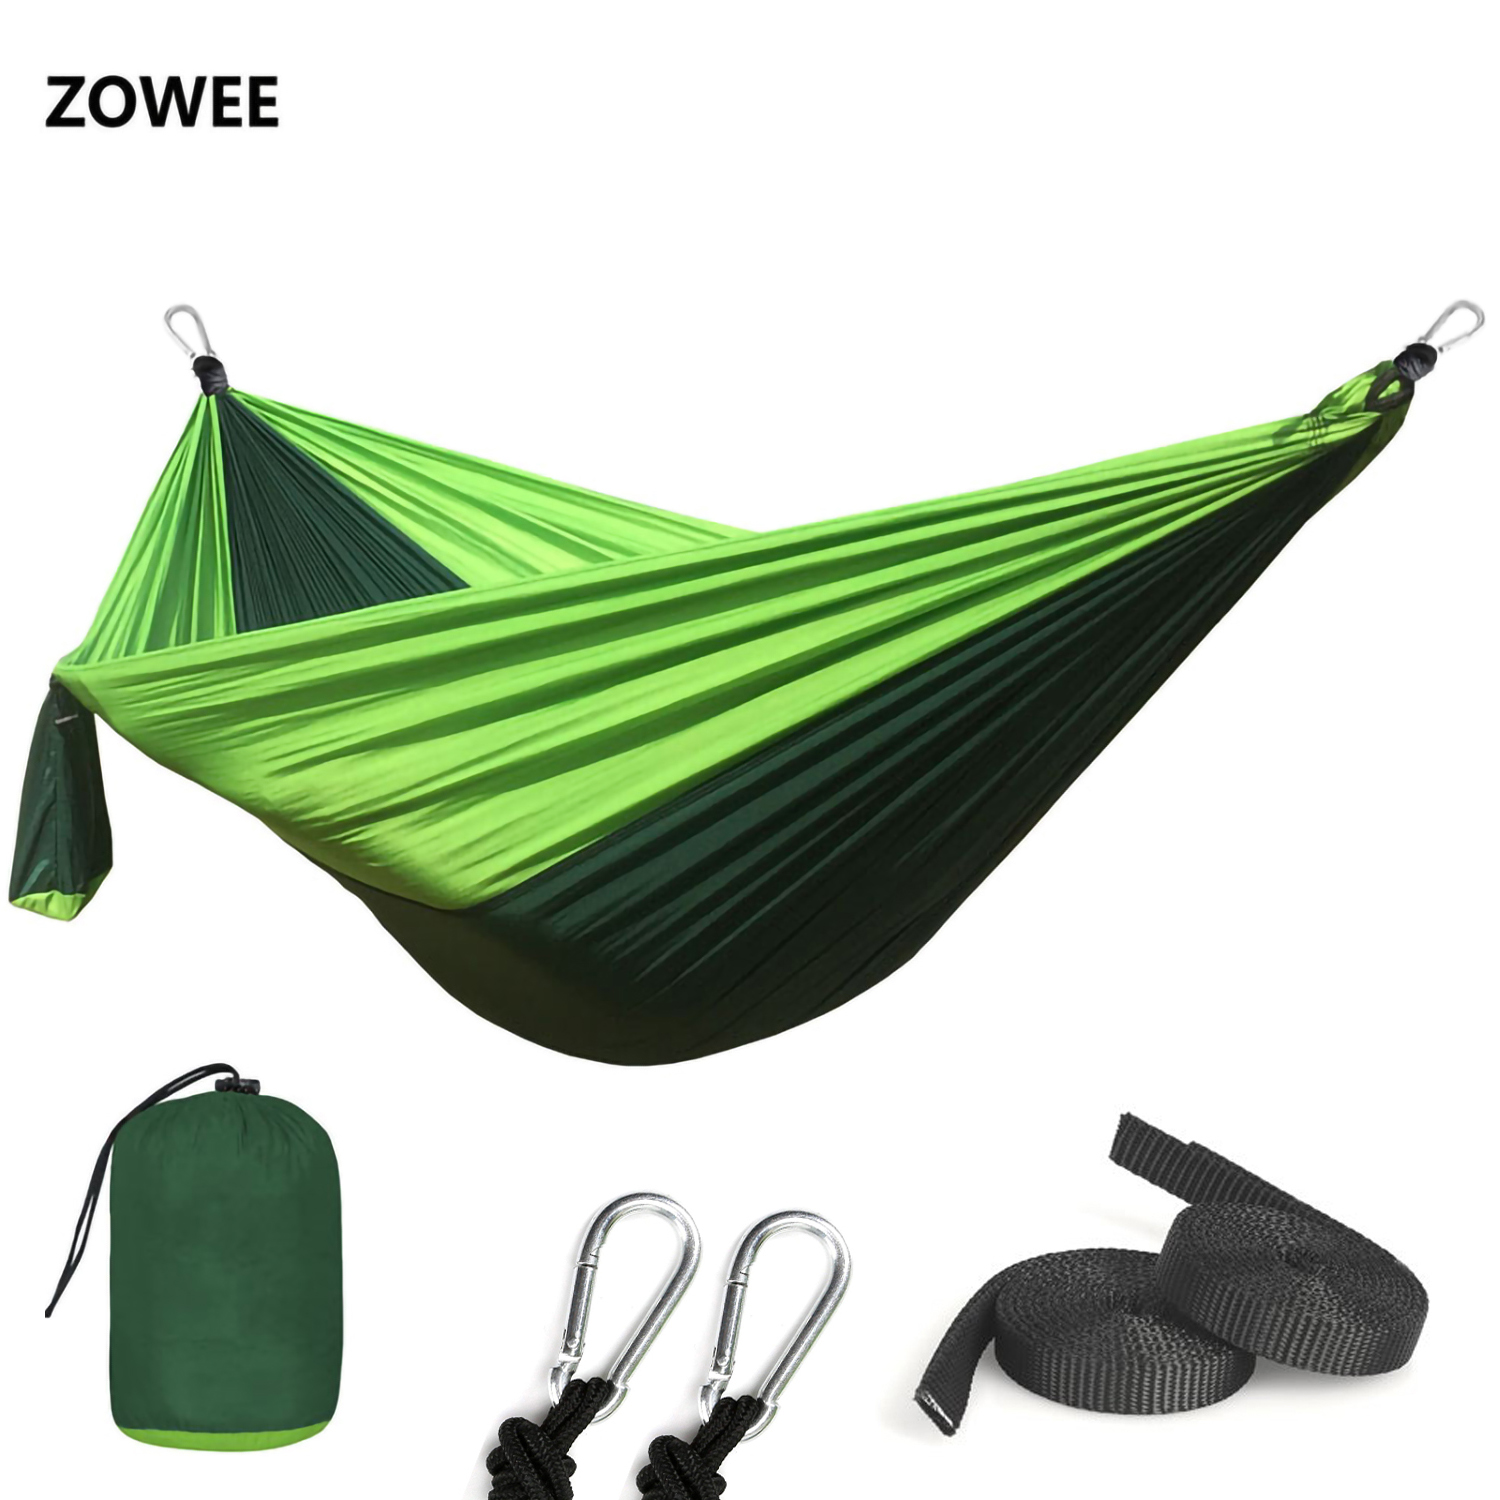 1-2 People Sleeping Parachute Hammock Chair Hamak Garden Swing Hanging Outdoor Hamacas Camping 118*78''